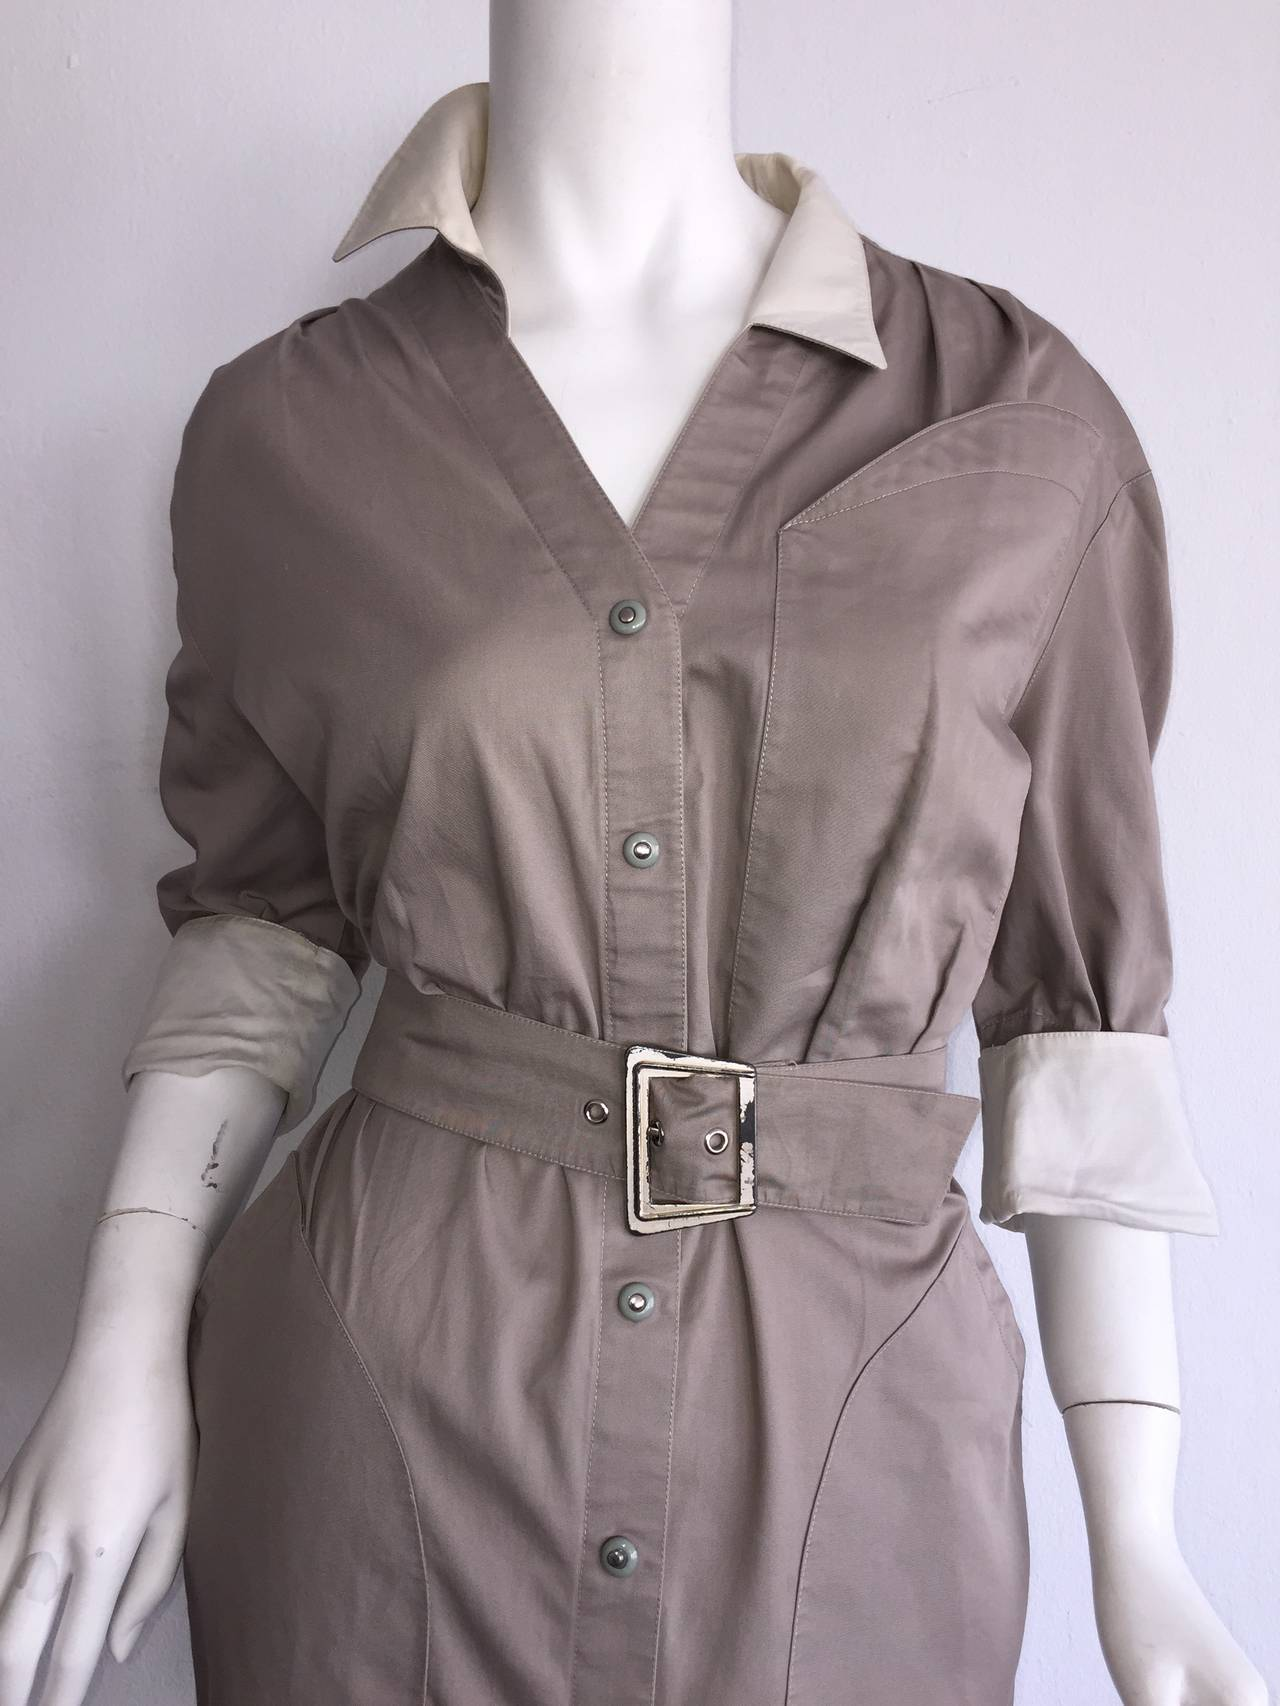 Sexy Vintage Thierry Mugler Avant Garde Belted Khaki Safari Shirt Dress 3